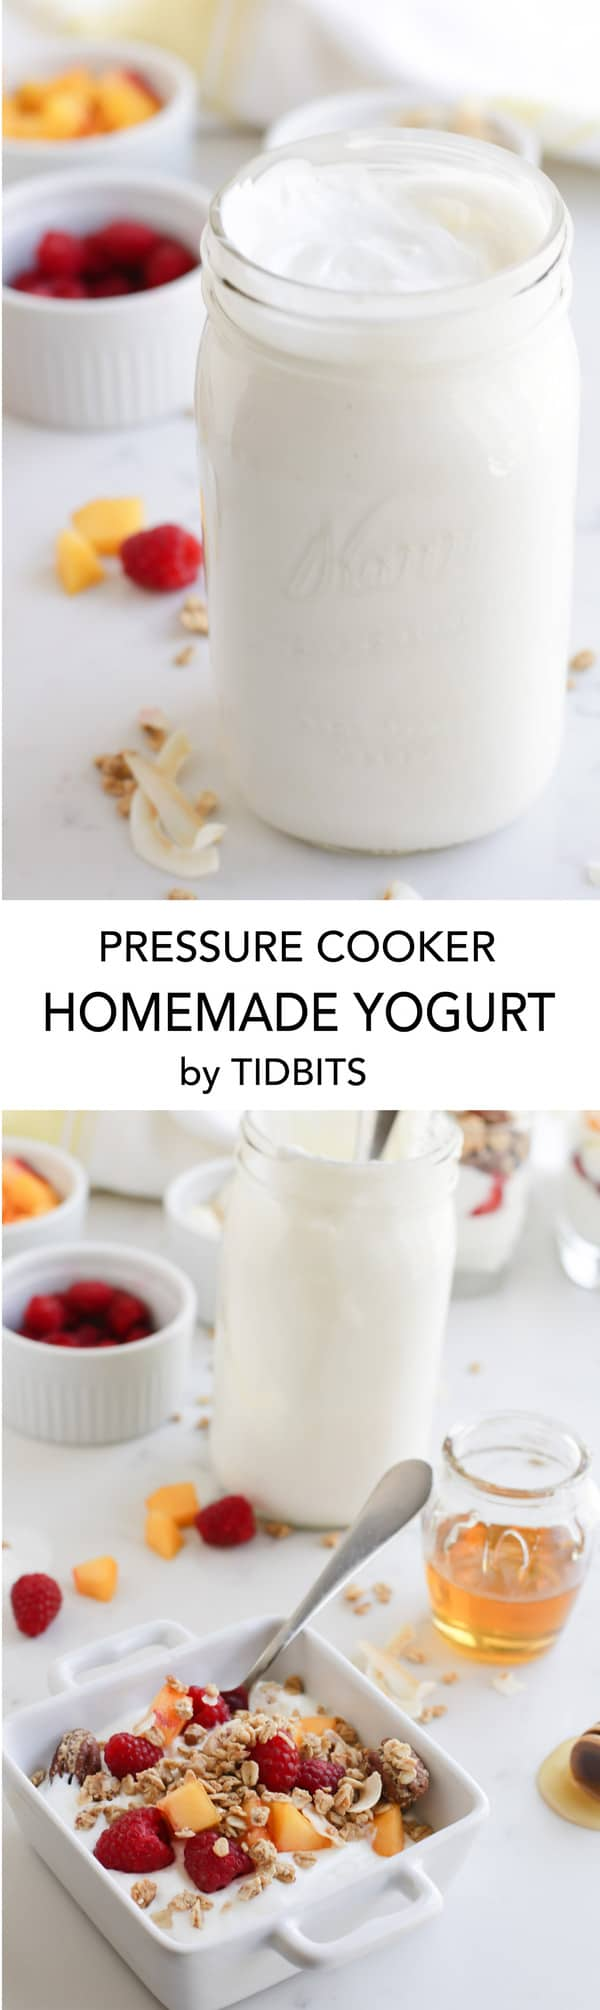 Pressure Cooker Homemade Yogurt- the most delicious, creamy yogurt you will ever meet